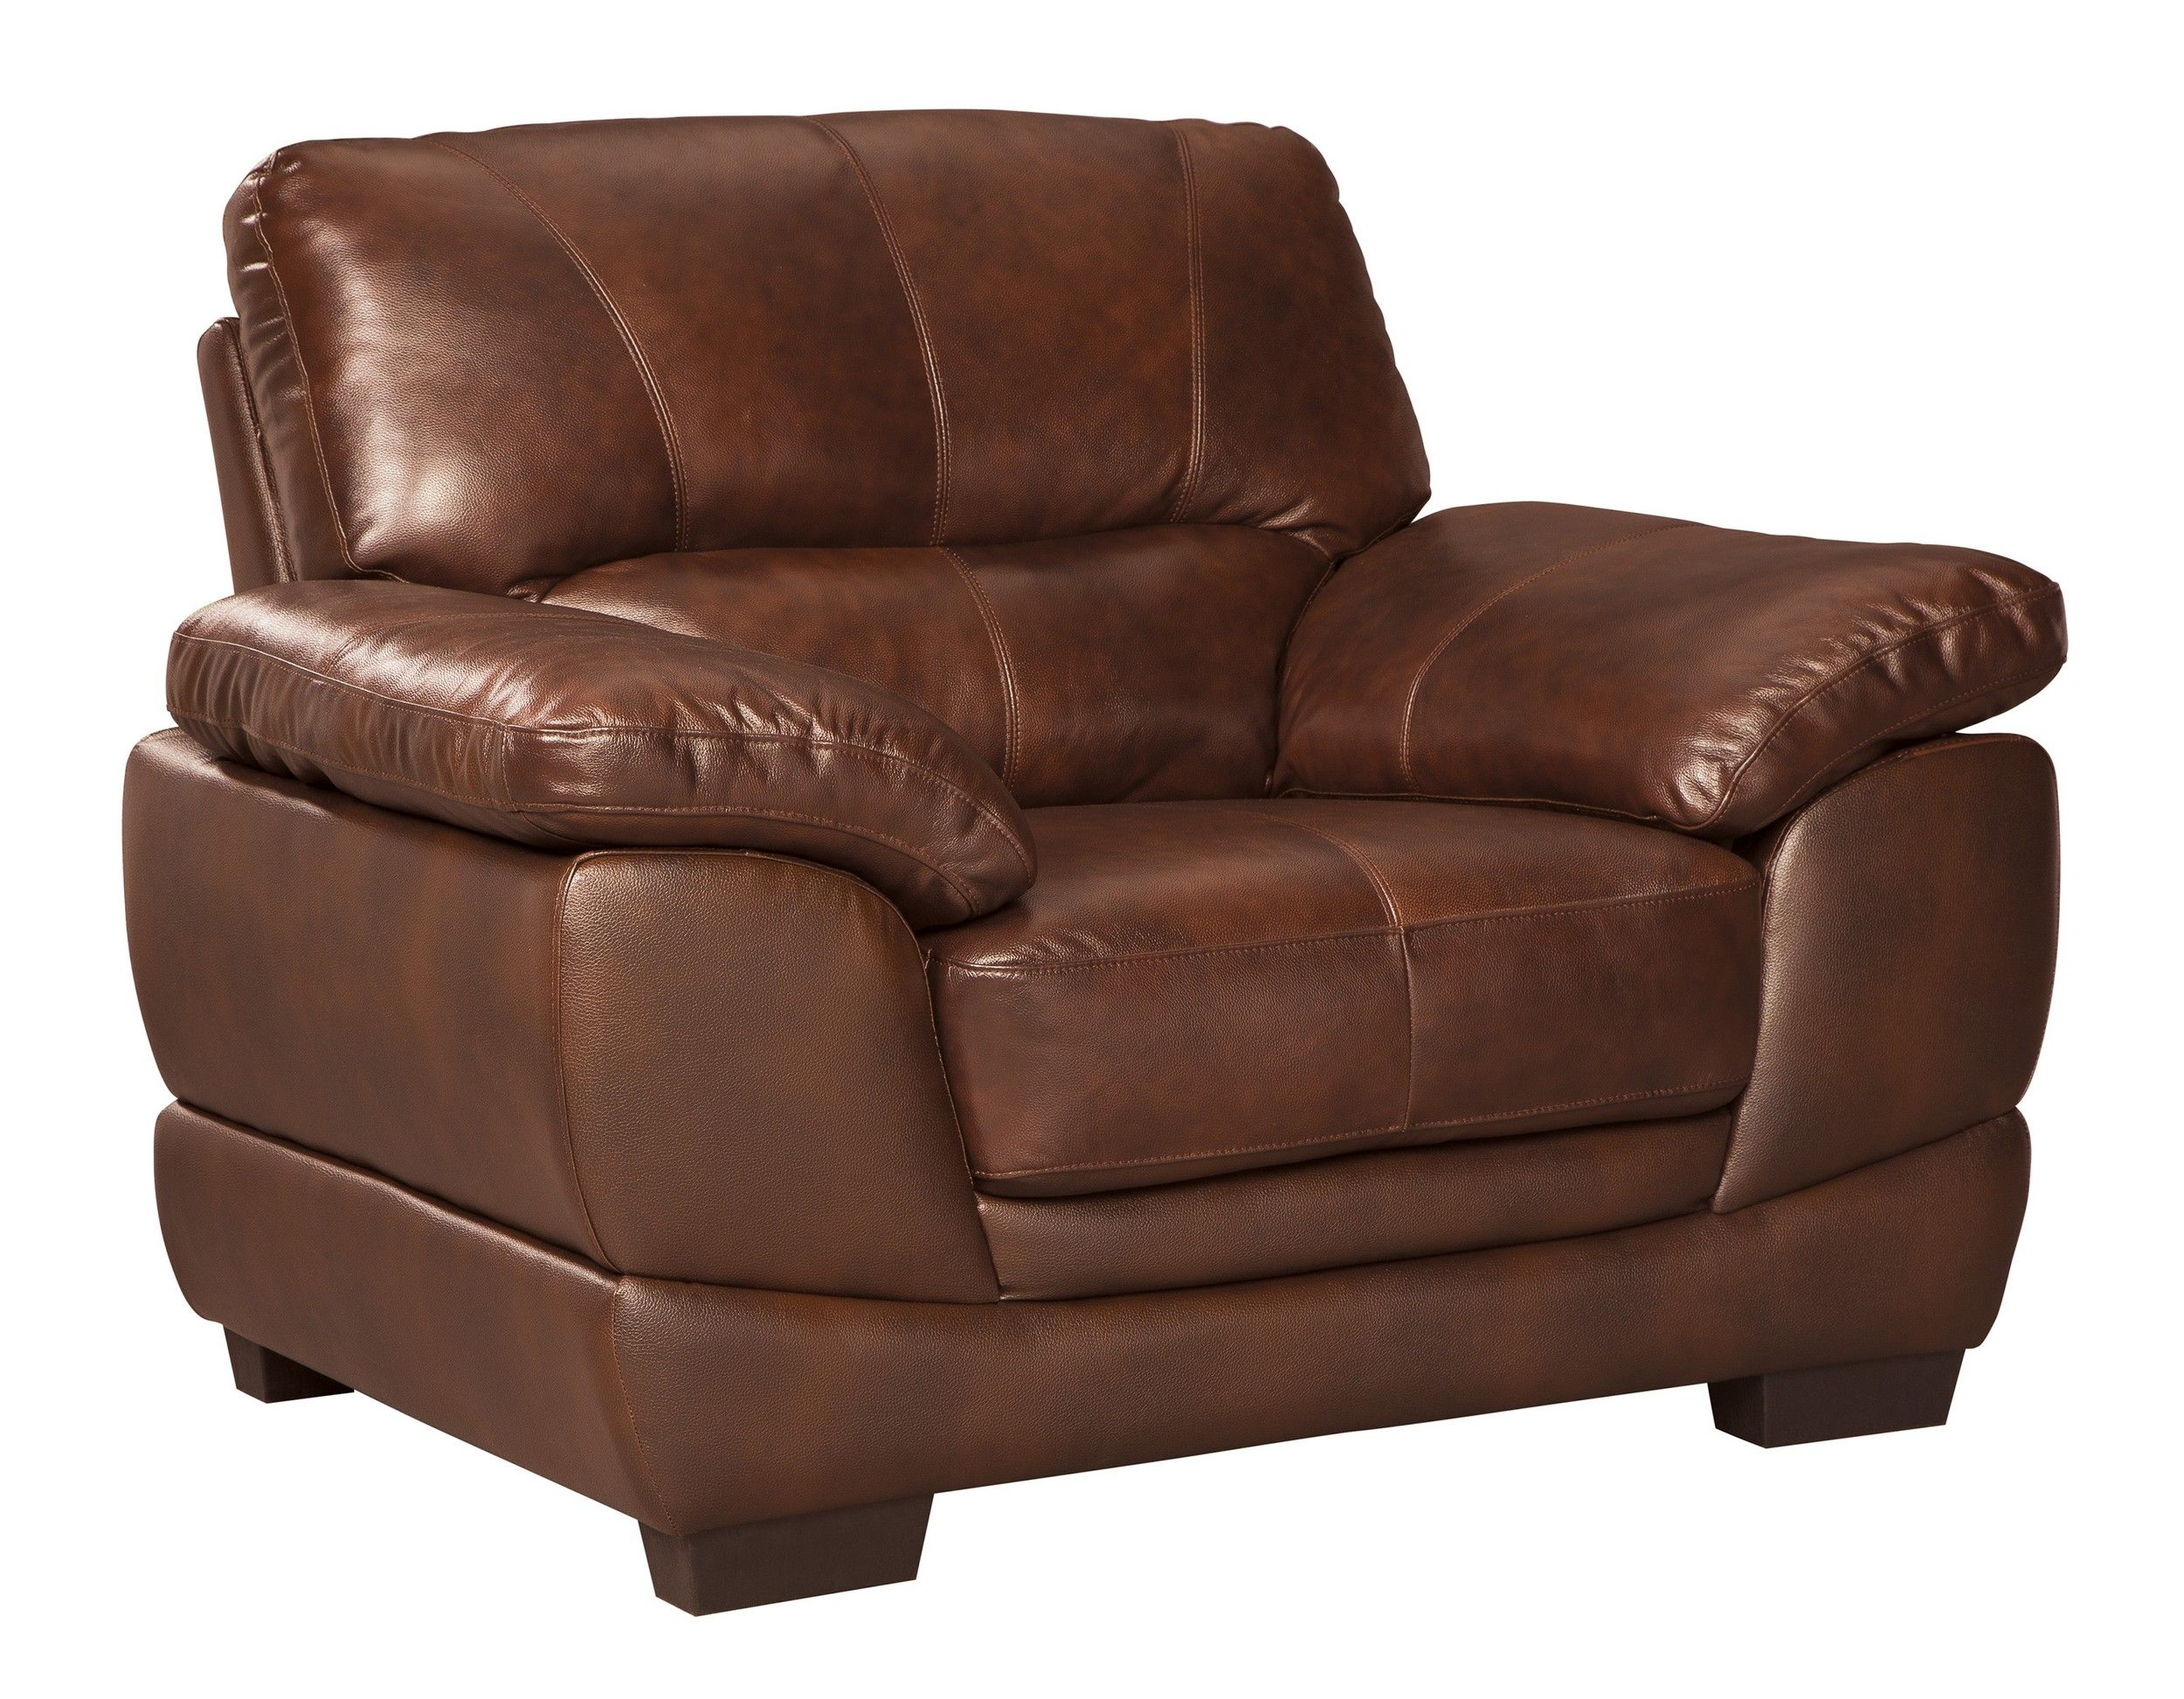 Lowest Price On Signature Design By Ashley Fontenot Chocolate Chair 1220420 Shop Today Signature Design Sectional Sofa With Recliner Club Chairs